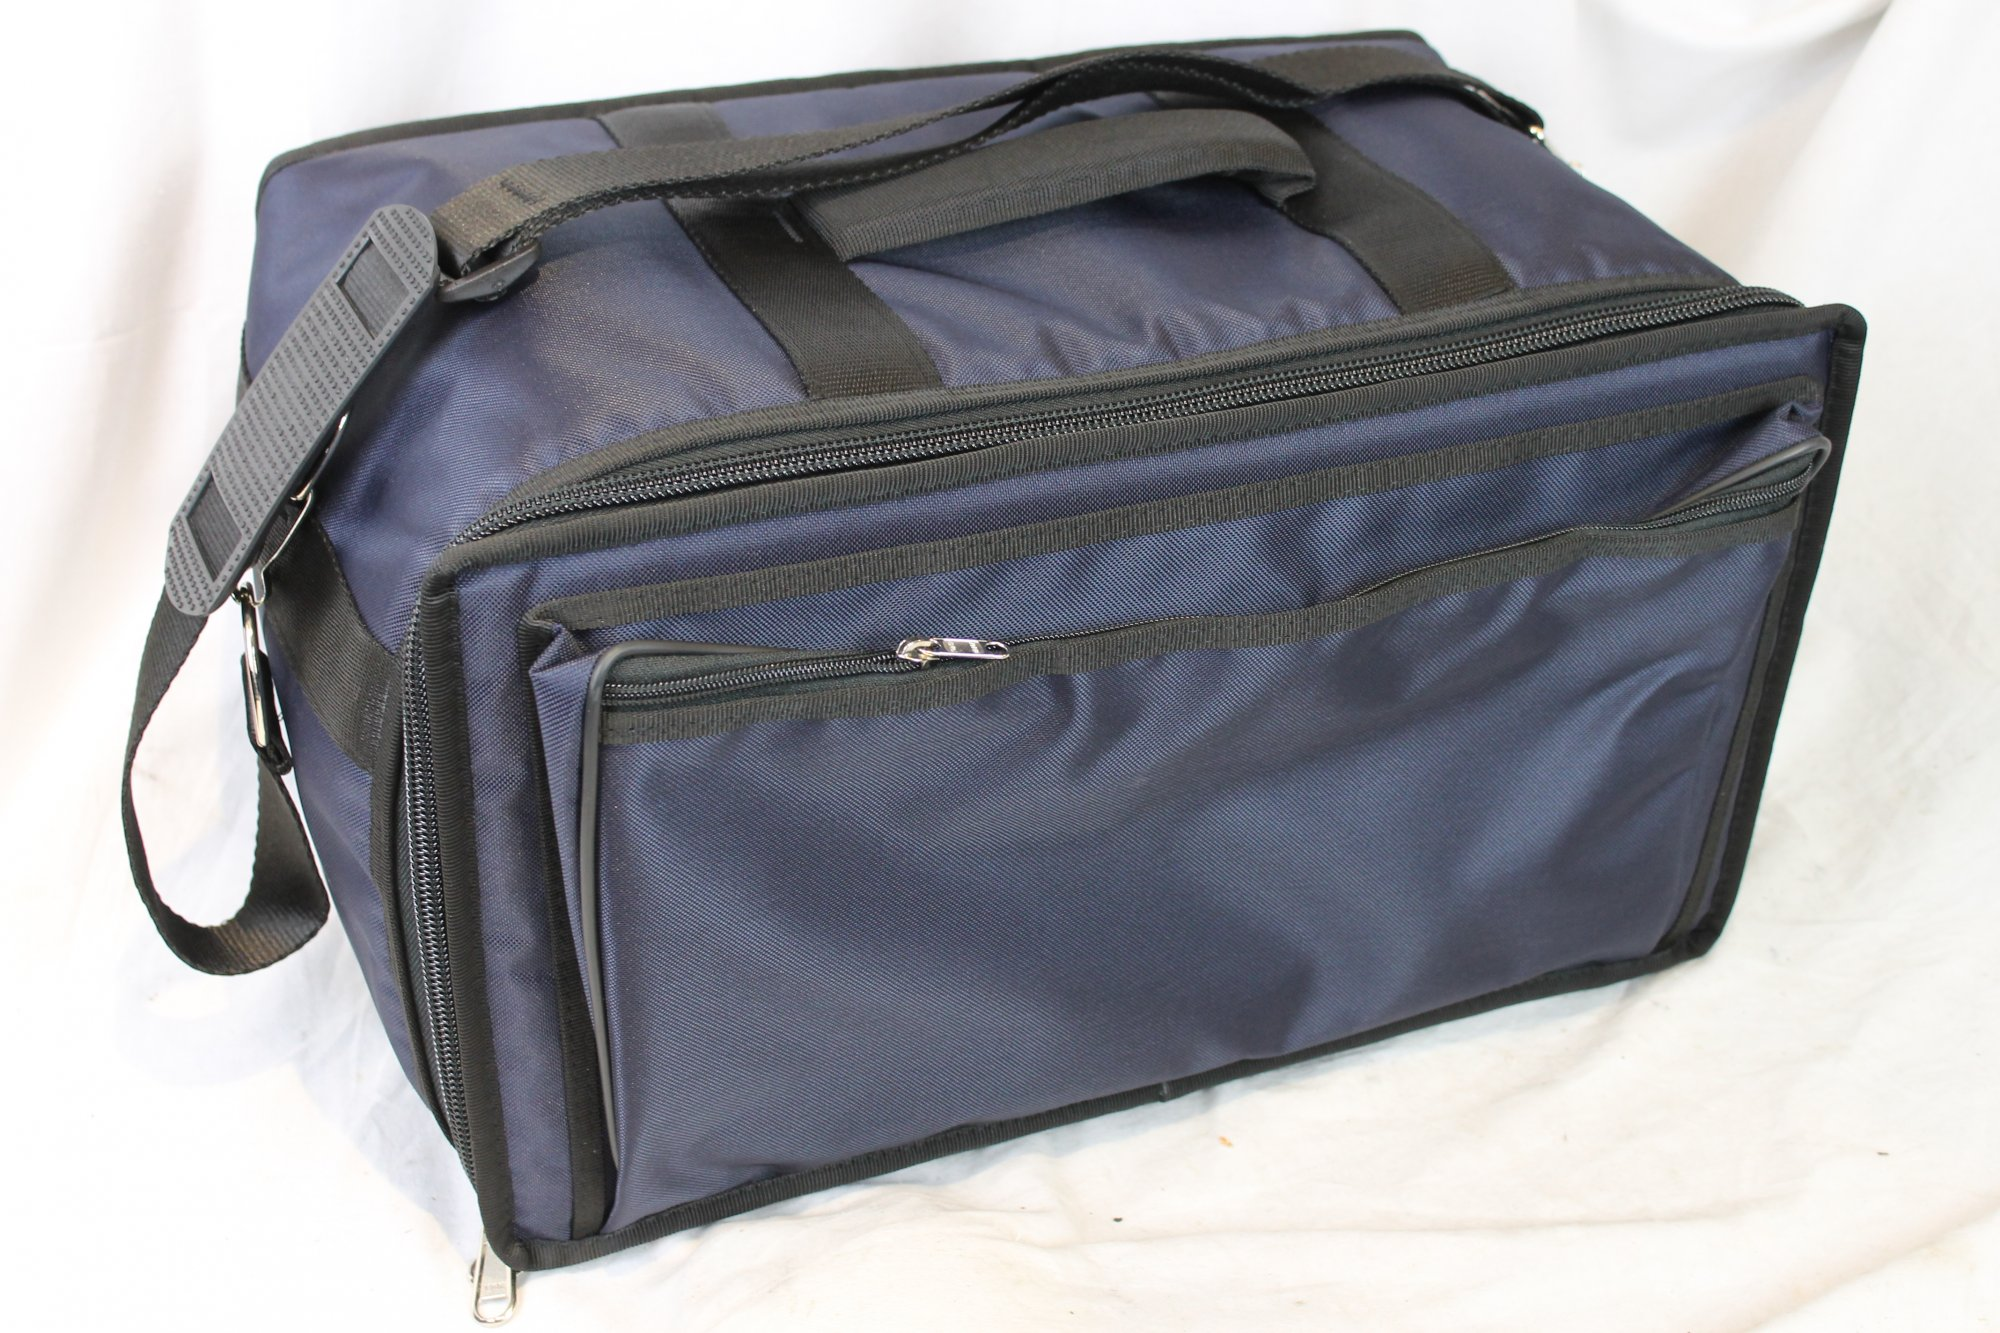 NEW Blue Fuselli Soft Case Gig Bag for Bandoneon Concertina 18 x 10.75 x 10.25